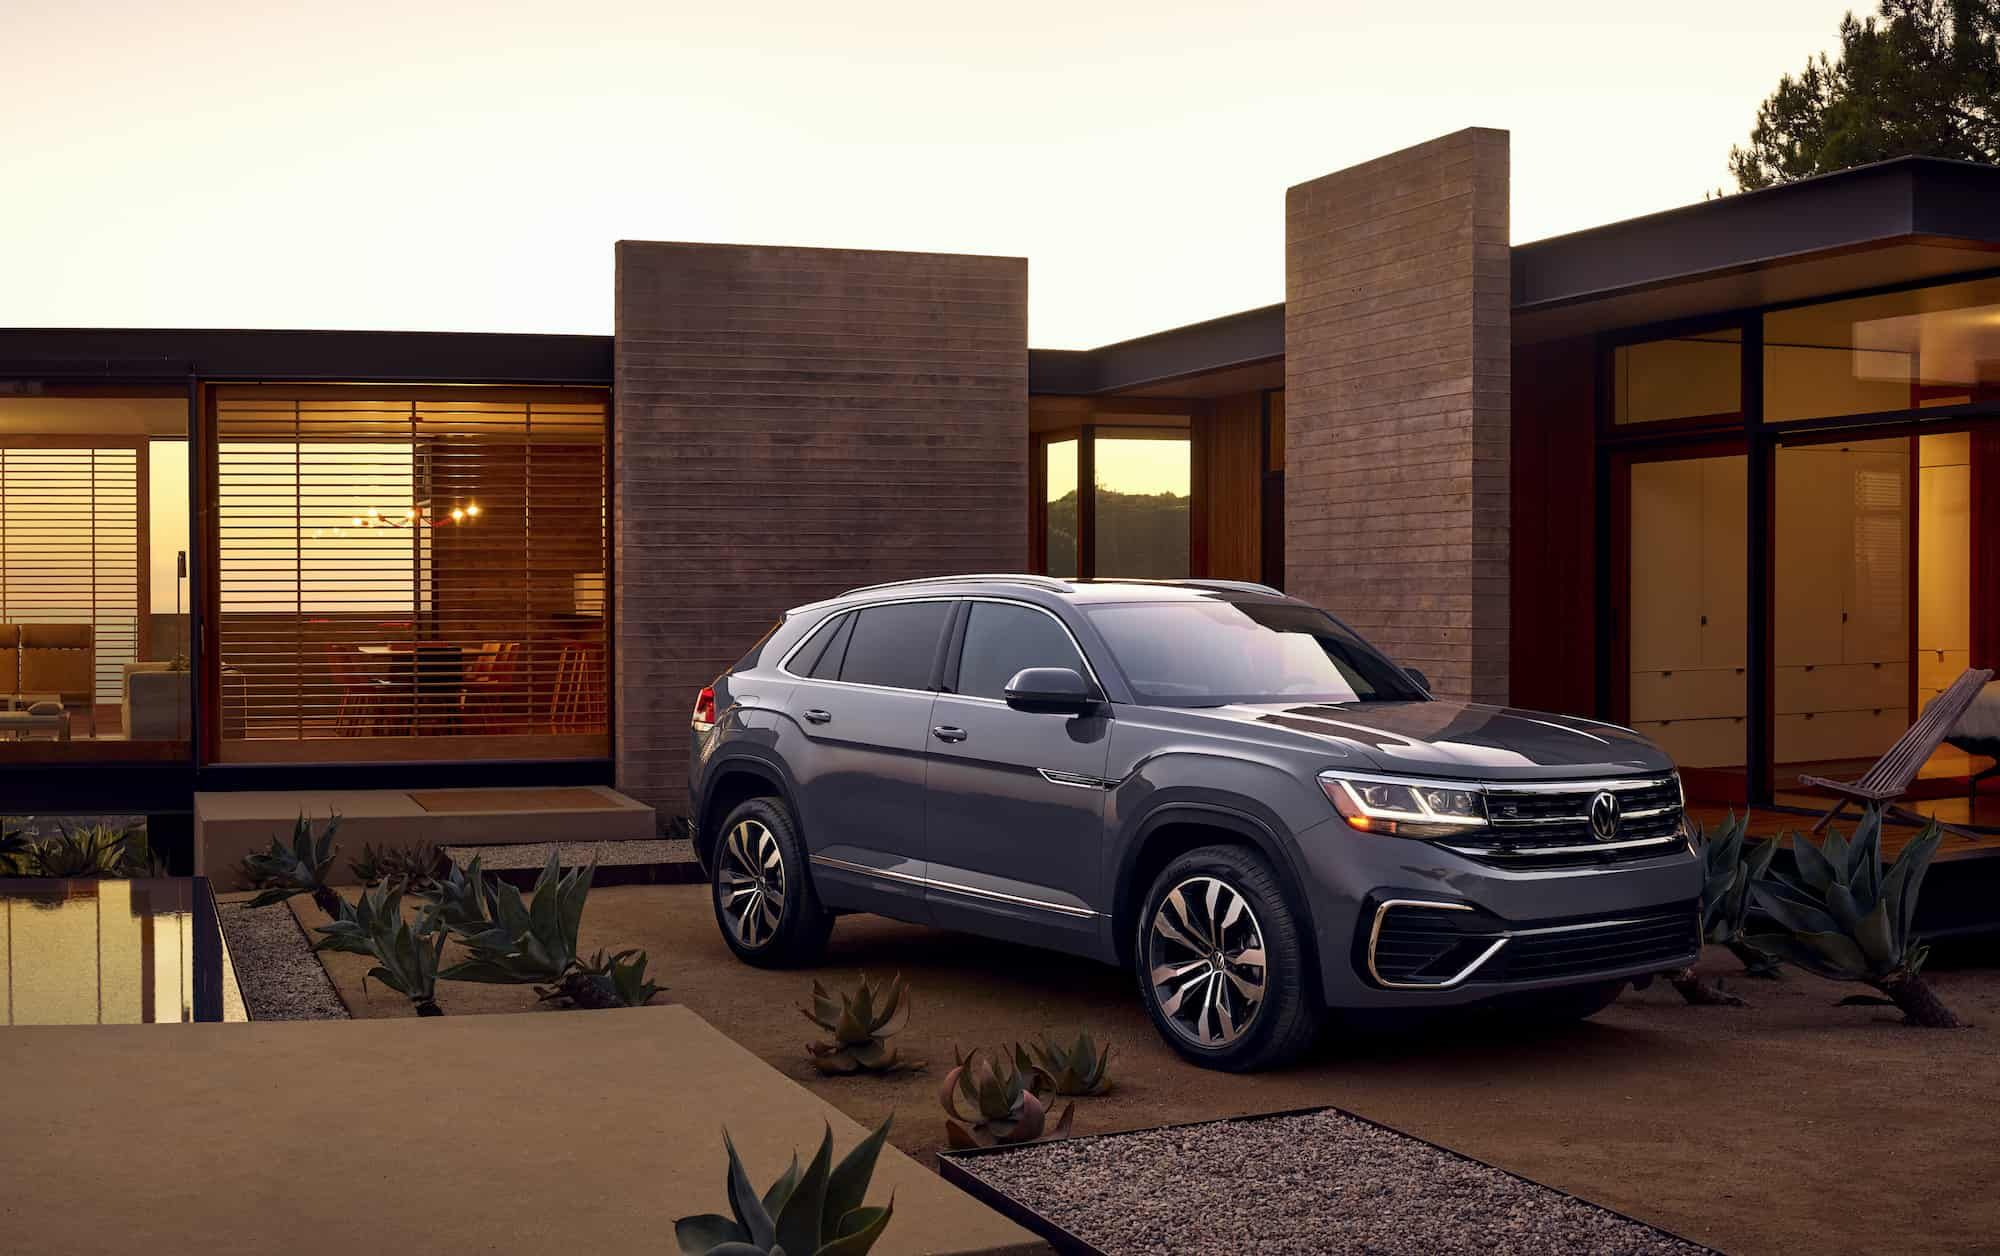 Vw S New 5 Seat Atlas Cross Sport Joins The Suv Lineup Early 2020 In 2020 New Mustang Suv Volkswagen